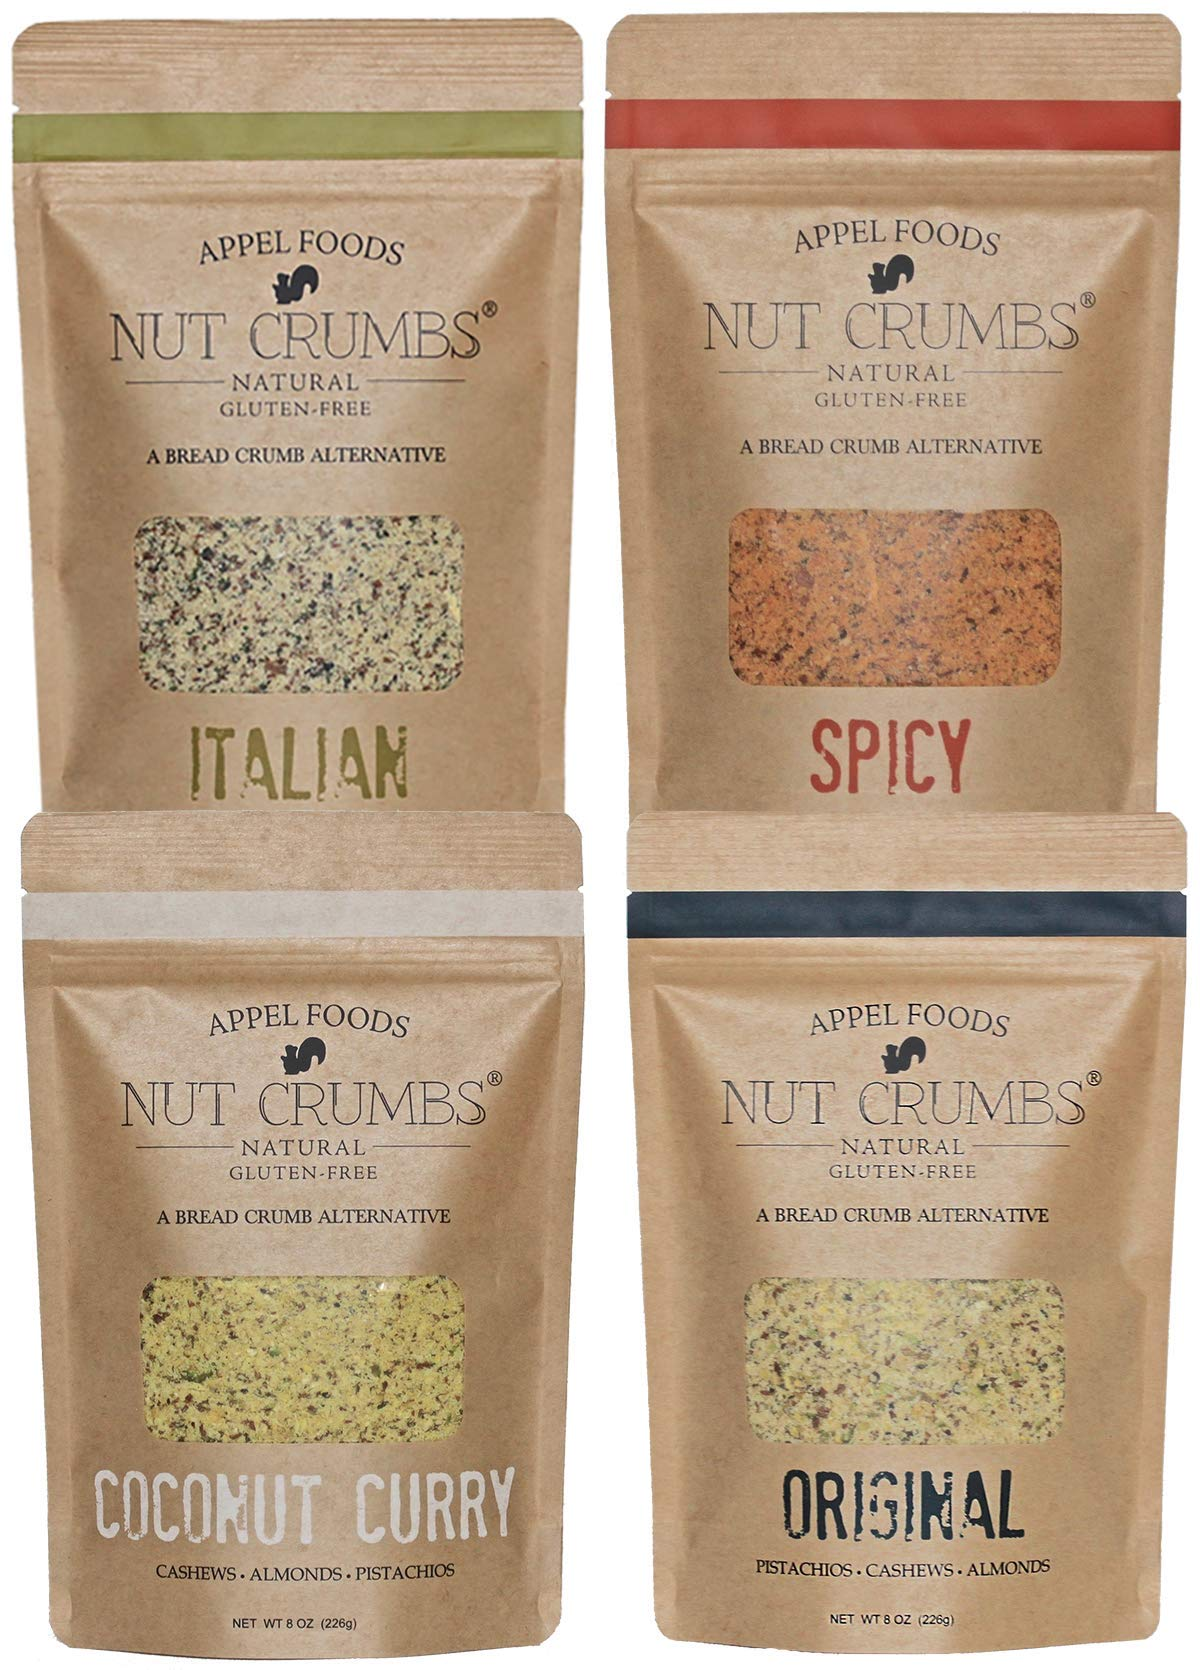 Appel Foods - Nut Crumbs - Bread Crumb Alternative - Gluten Free - Sugar Free - Low Carb - Low Sodium - Raw, Premium Nuts - Variety Pack by Appel Foods Nut Crumbs Natural Gluten-Free A Bread Crumb Alternative (Image #1)